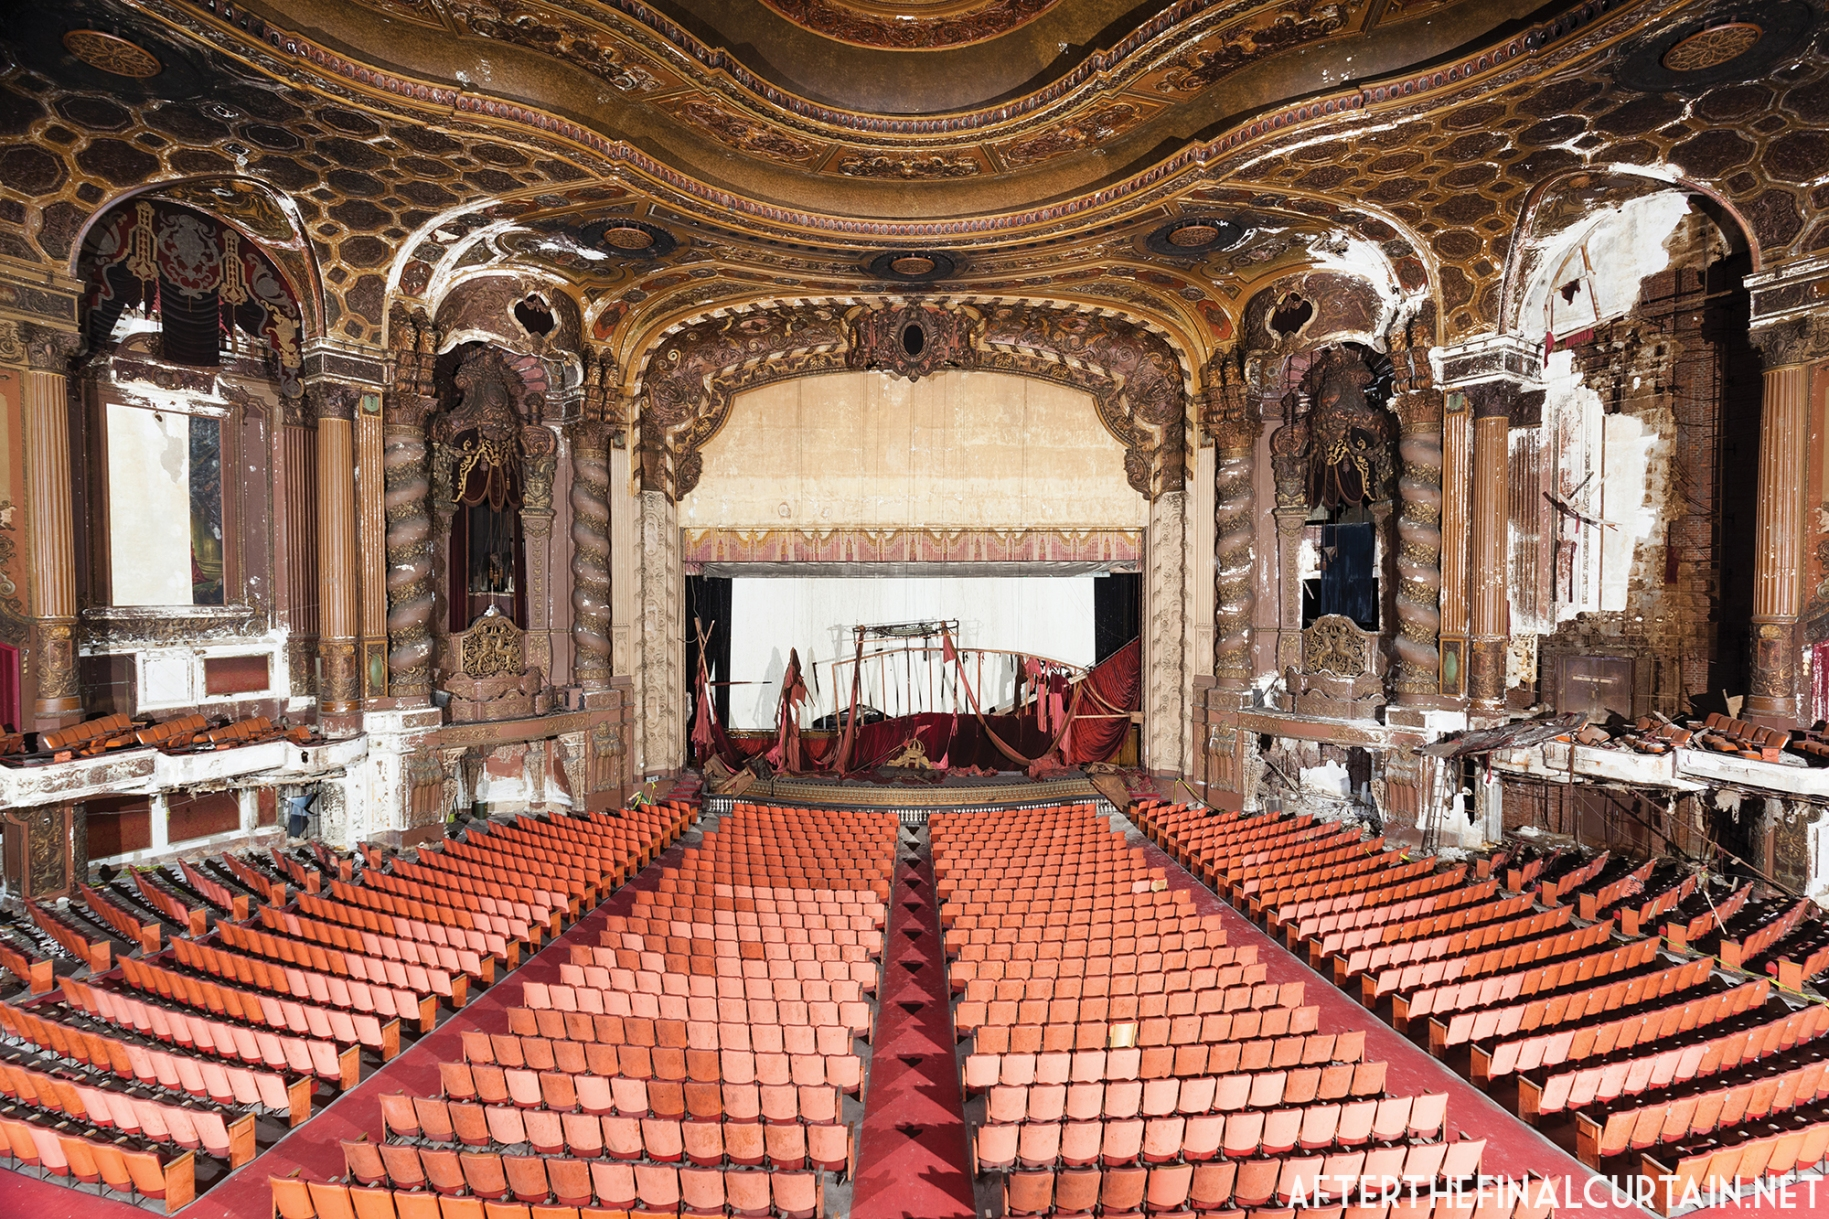 The Loew's Kings Theatre in Brooklyn, New York, designed by the architectural firm of Rapp and Rapp. All images courtesy of Matt Lambros, After the Final Curtain.